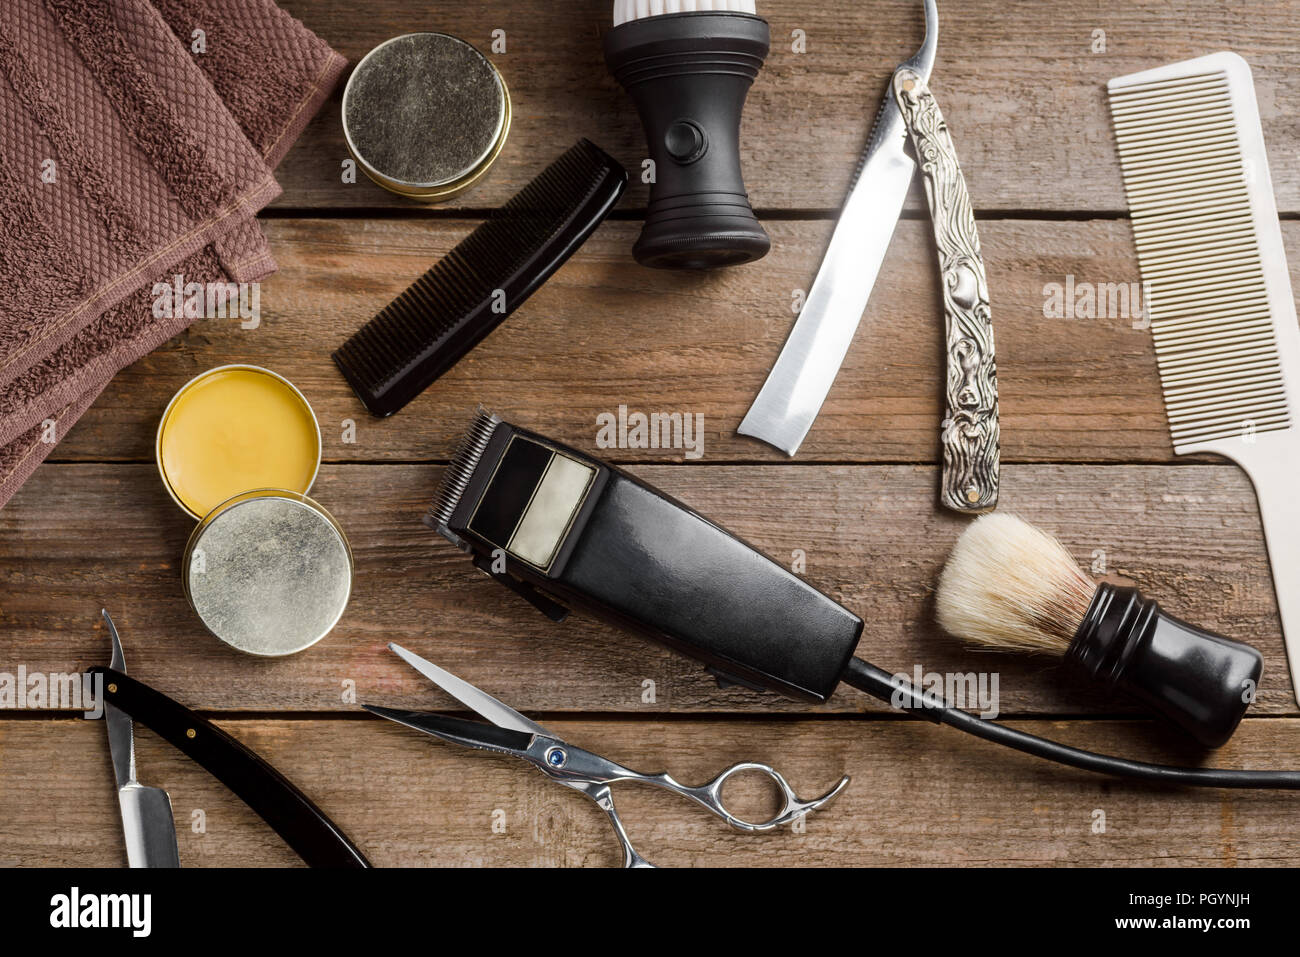 Vintage straight razors and combs - Stock Image